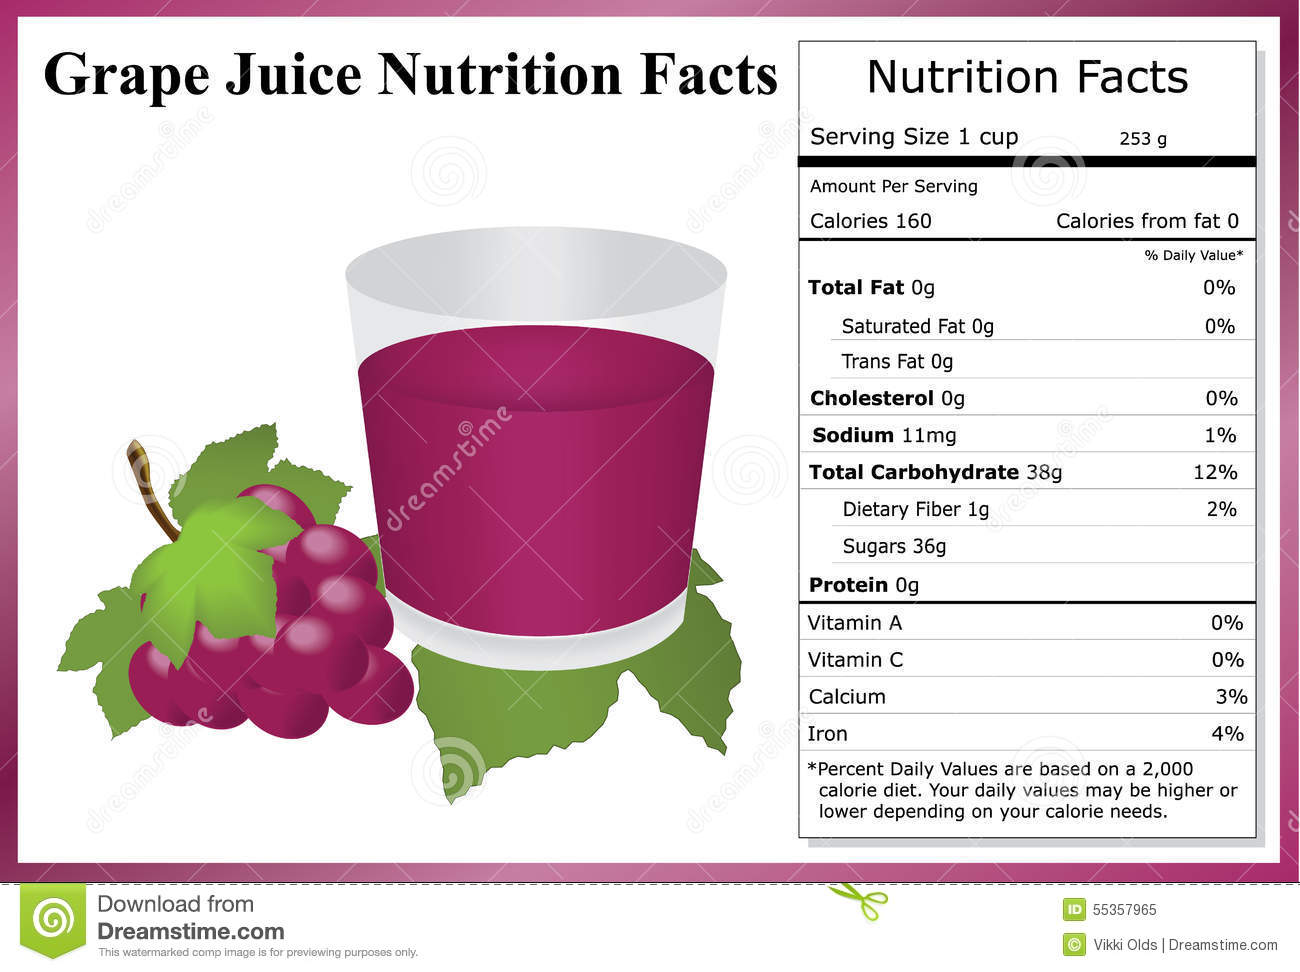 grape juice nutrition facts stock vector - illustration of